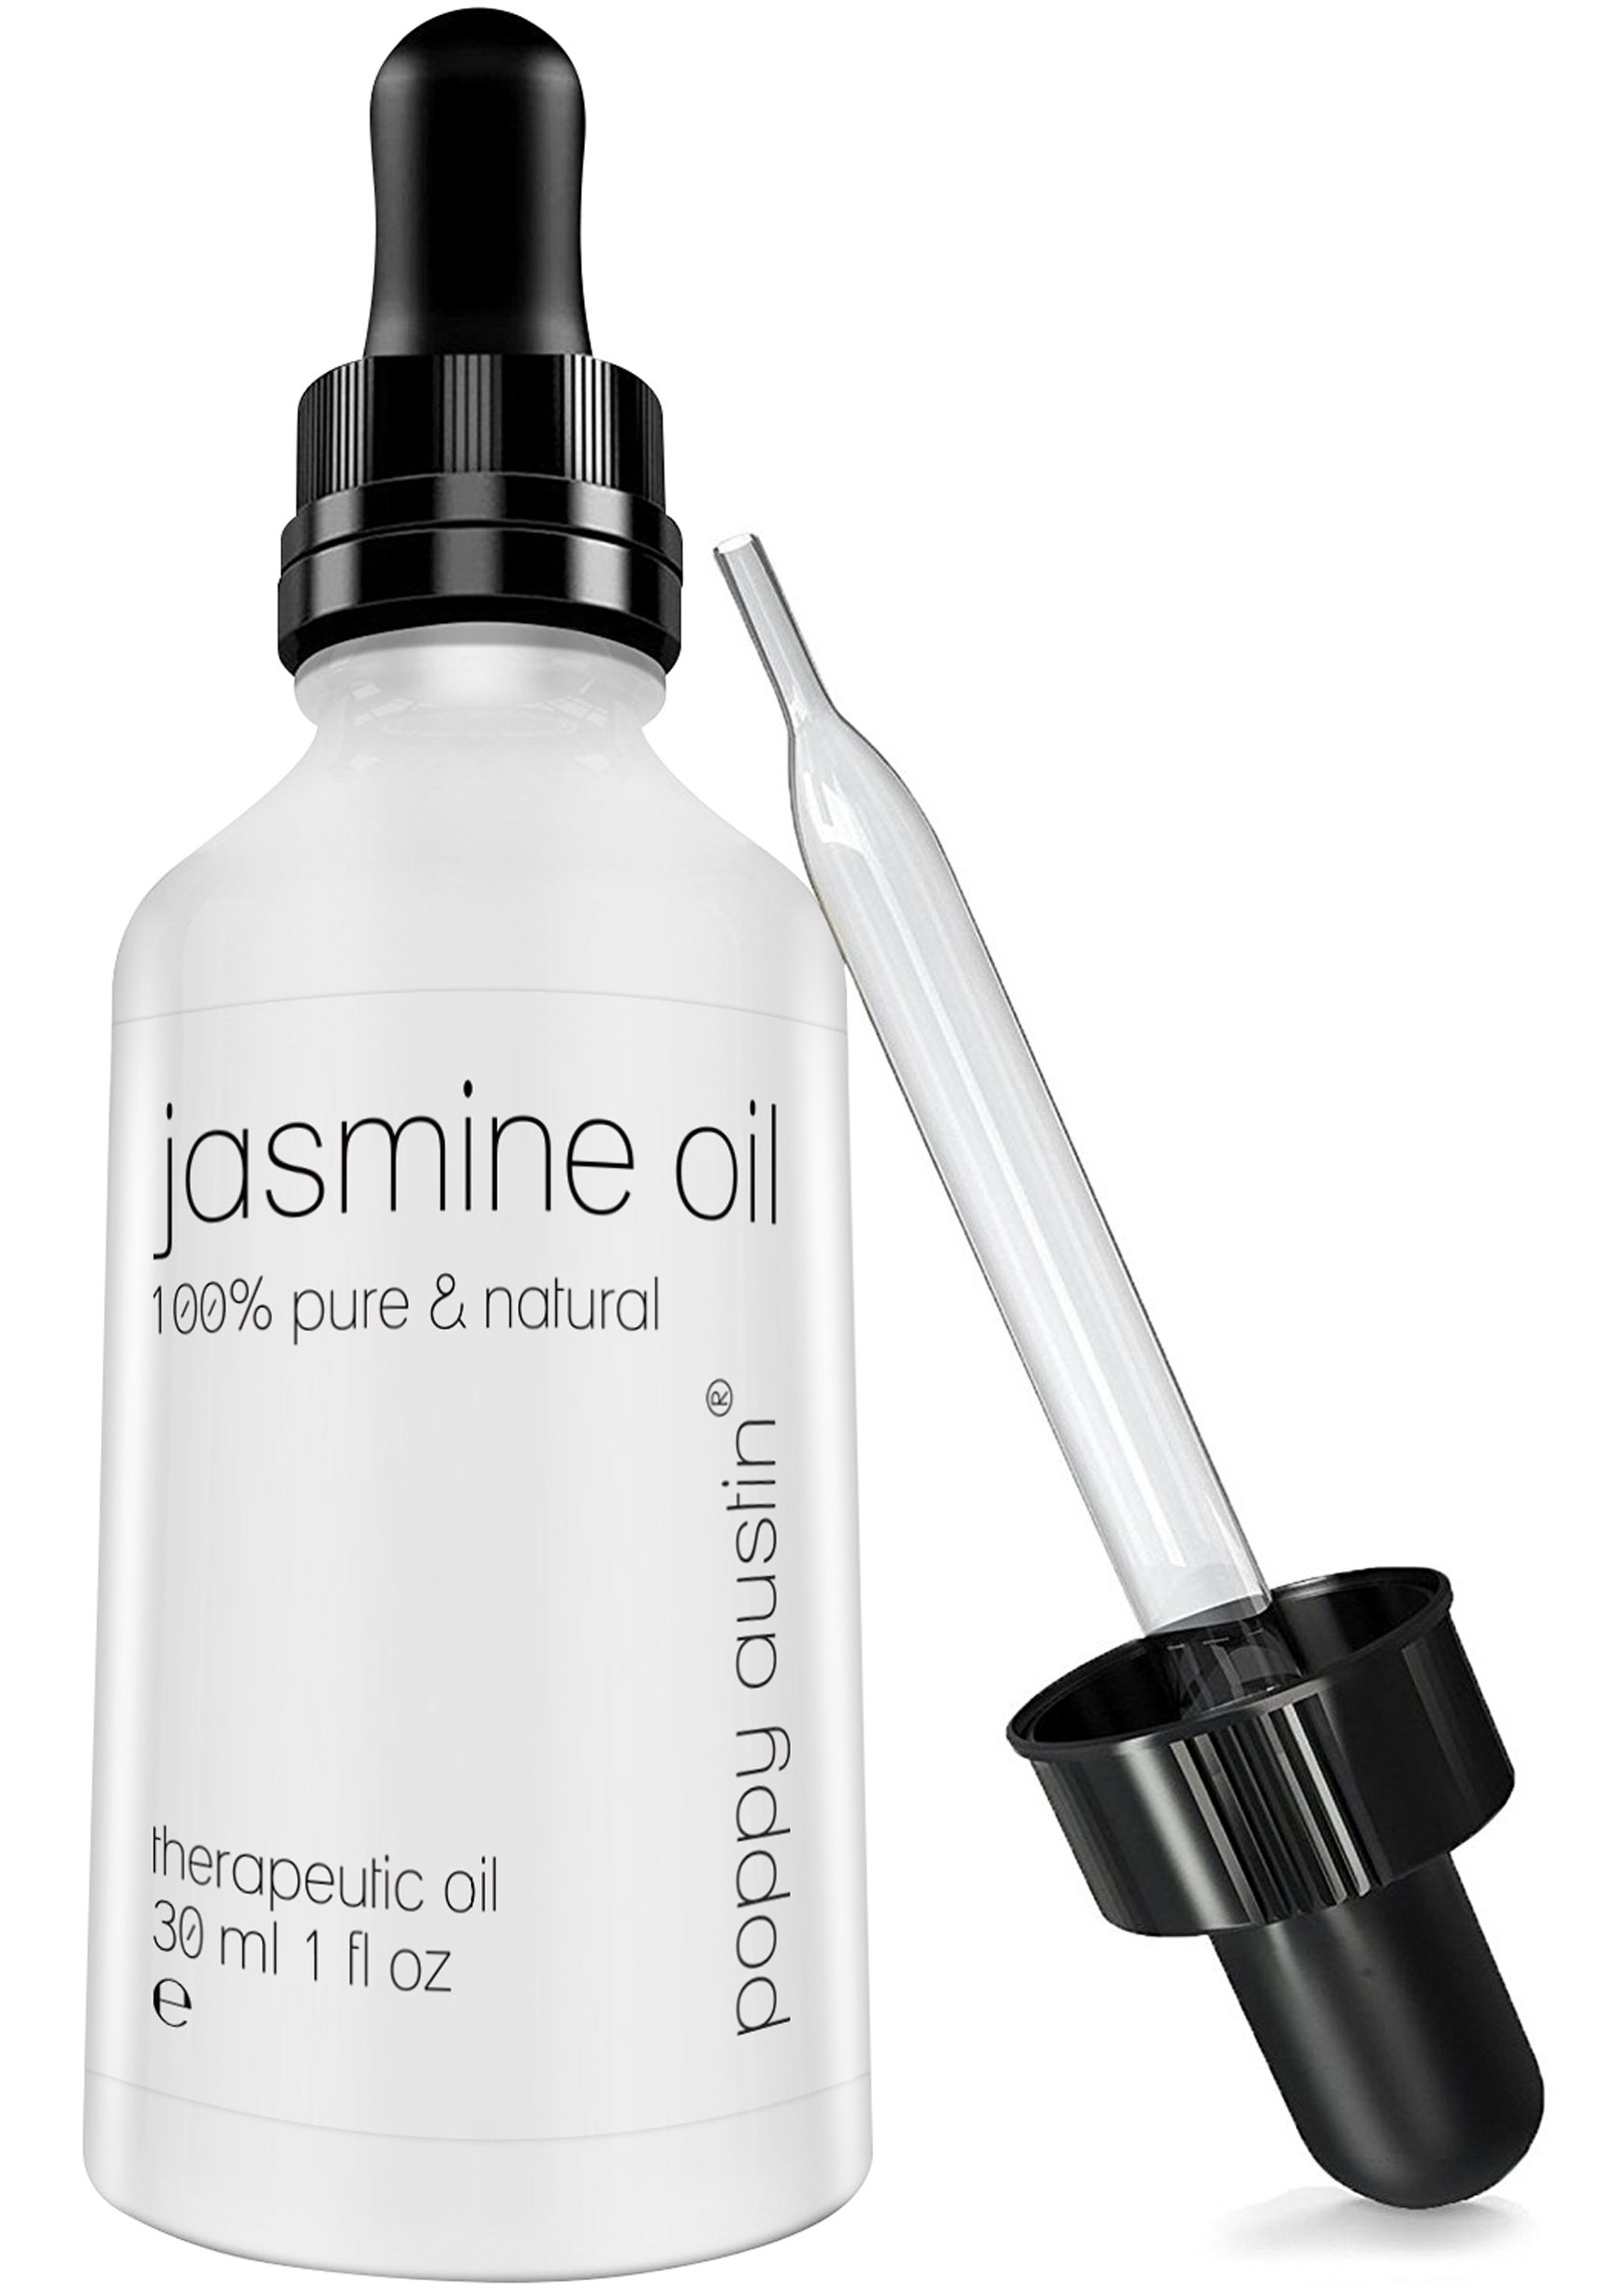 FINEST Jasmine Essential Oil (Jasminum Officinale) Therapeutic Grade - 100% Pure, Organic & Undiluted Jasmine Oil, 1 oz